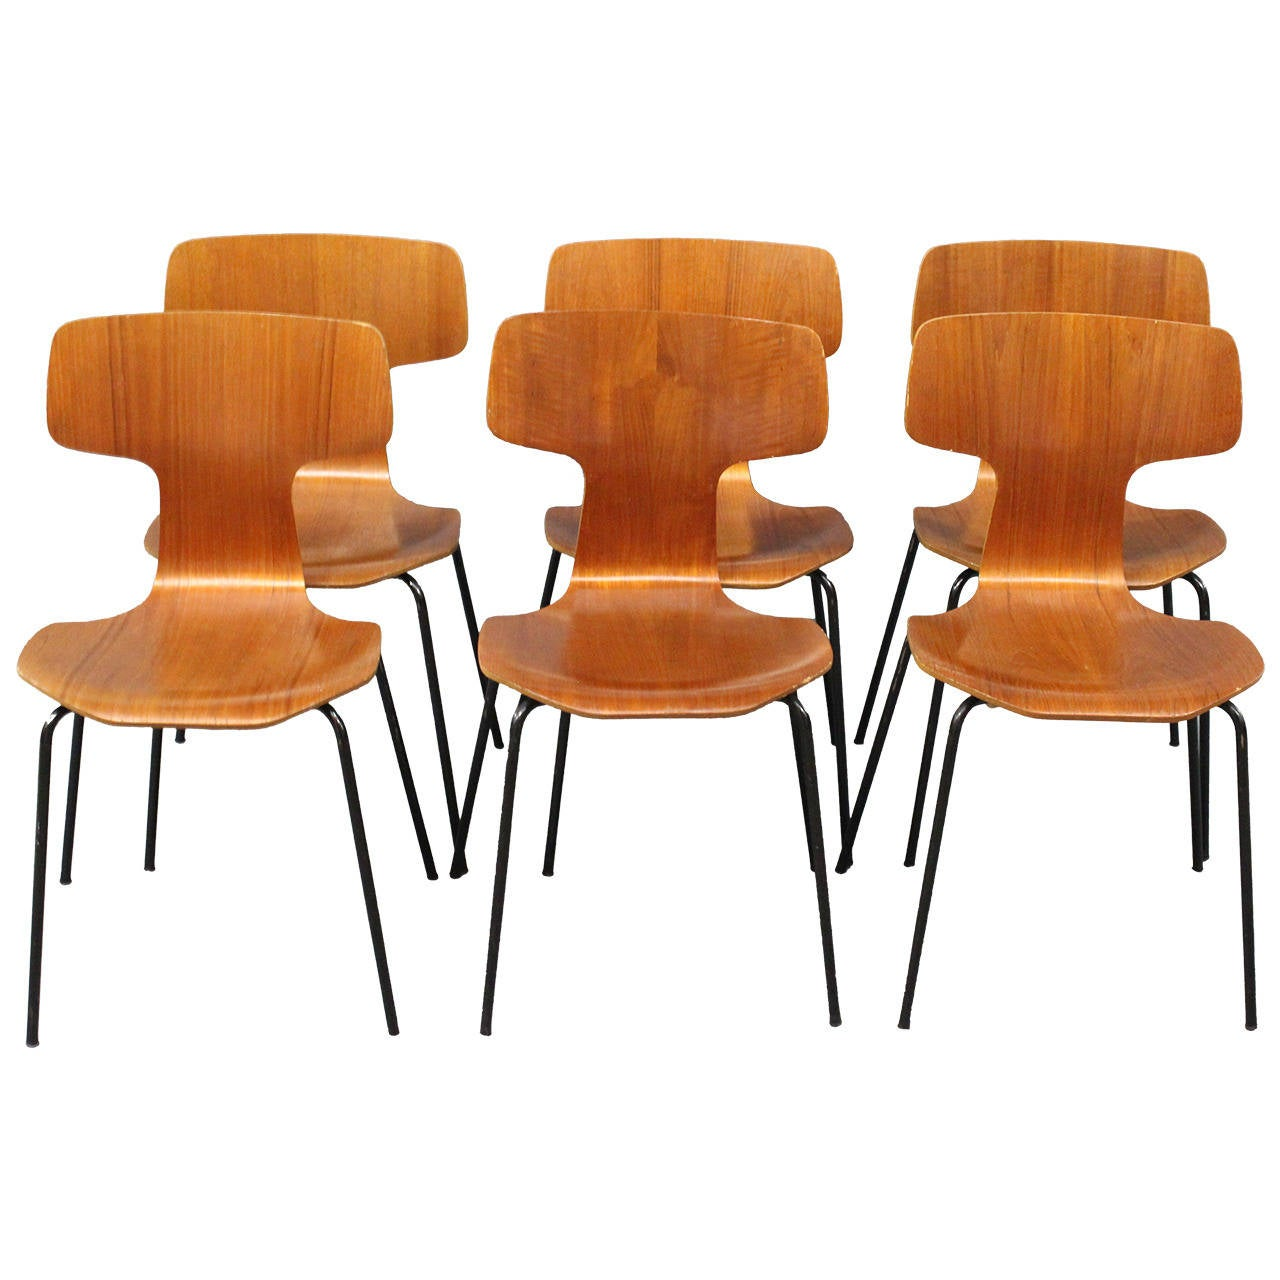 chairs by arne jacobsen model 3103 in teak 1970s for sale. Black Bedroom Furniture Sets. Home Design Ideas